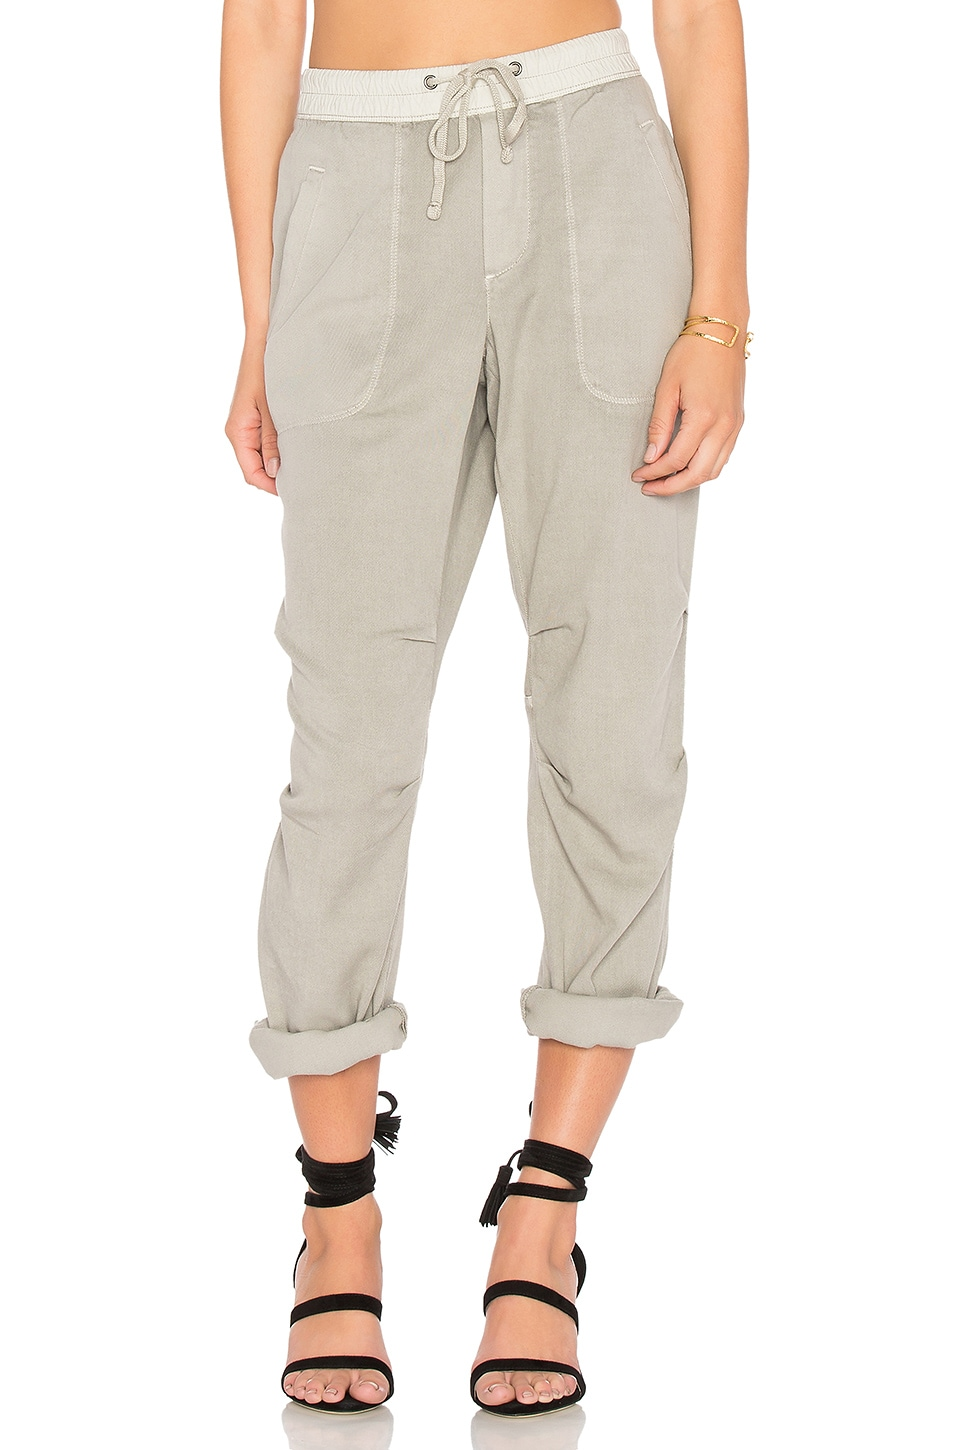 James Perse Twill Jogger Pant in Dapple